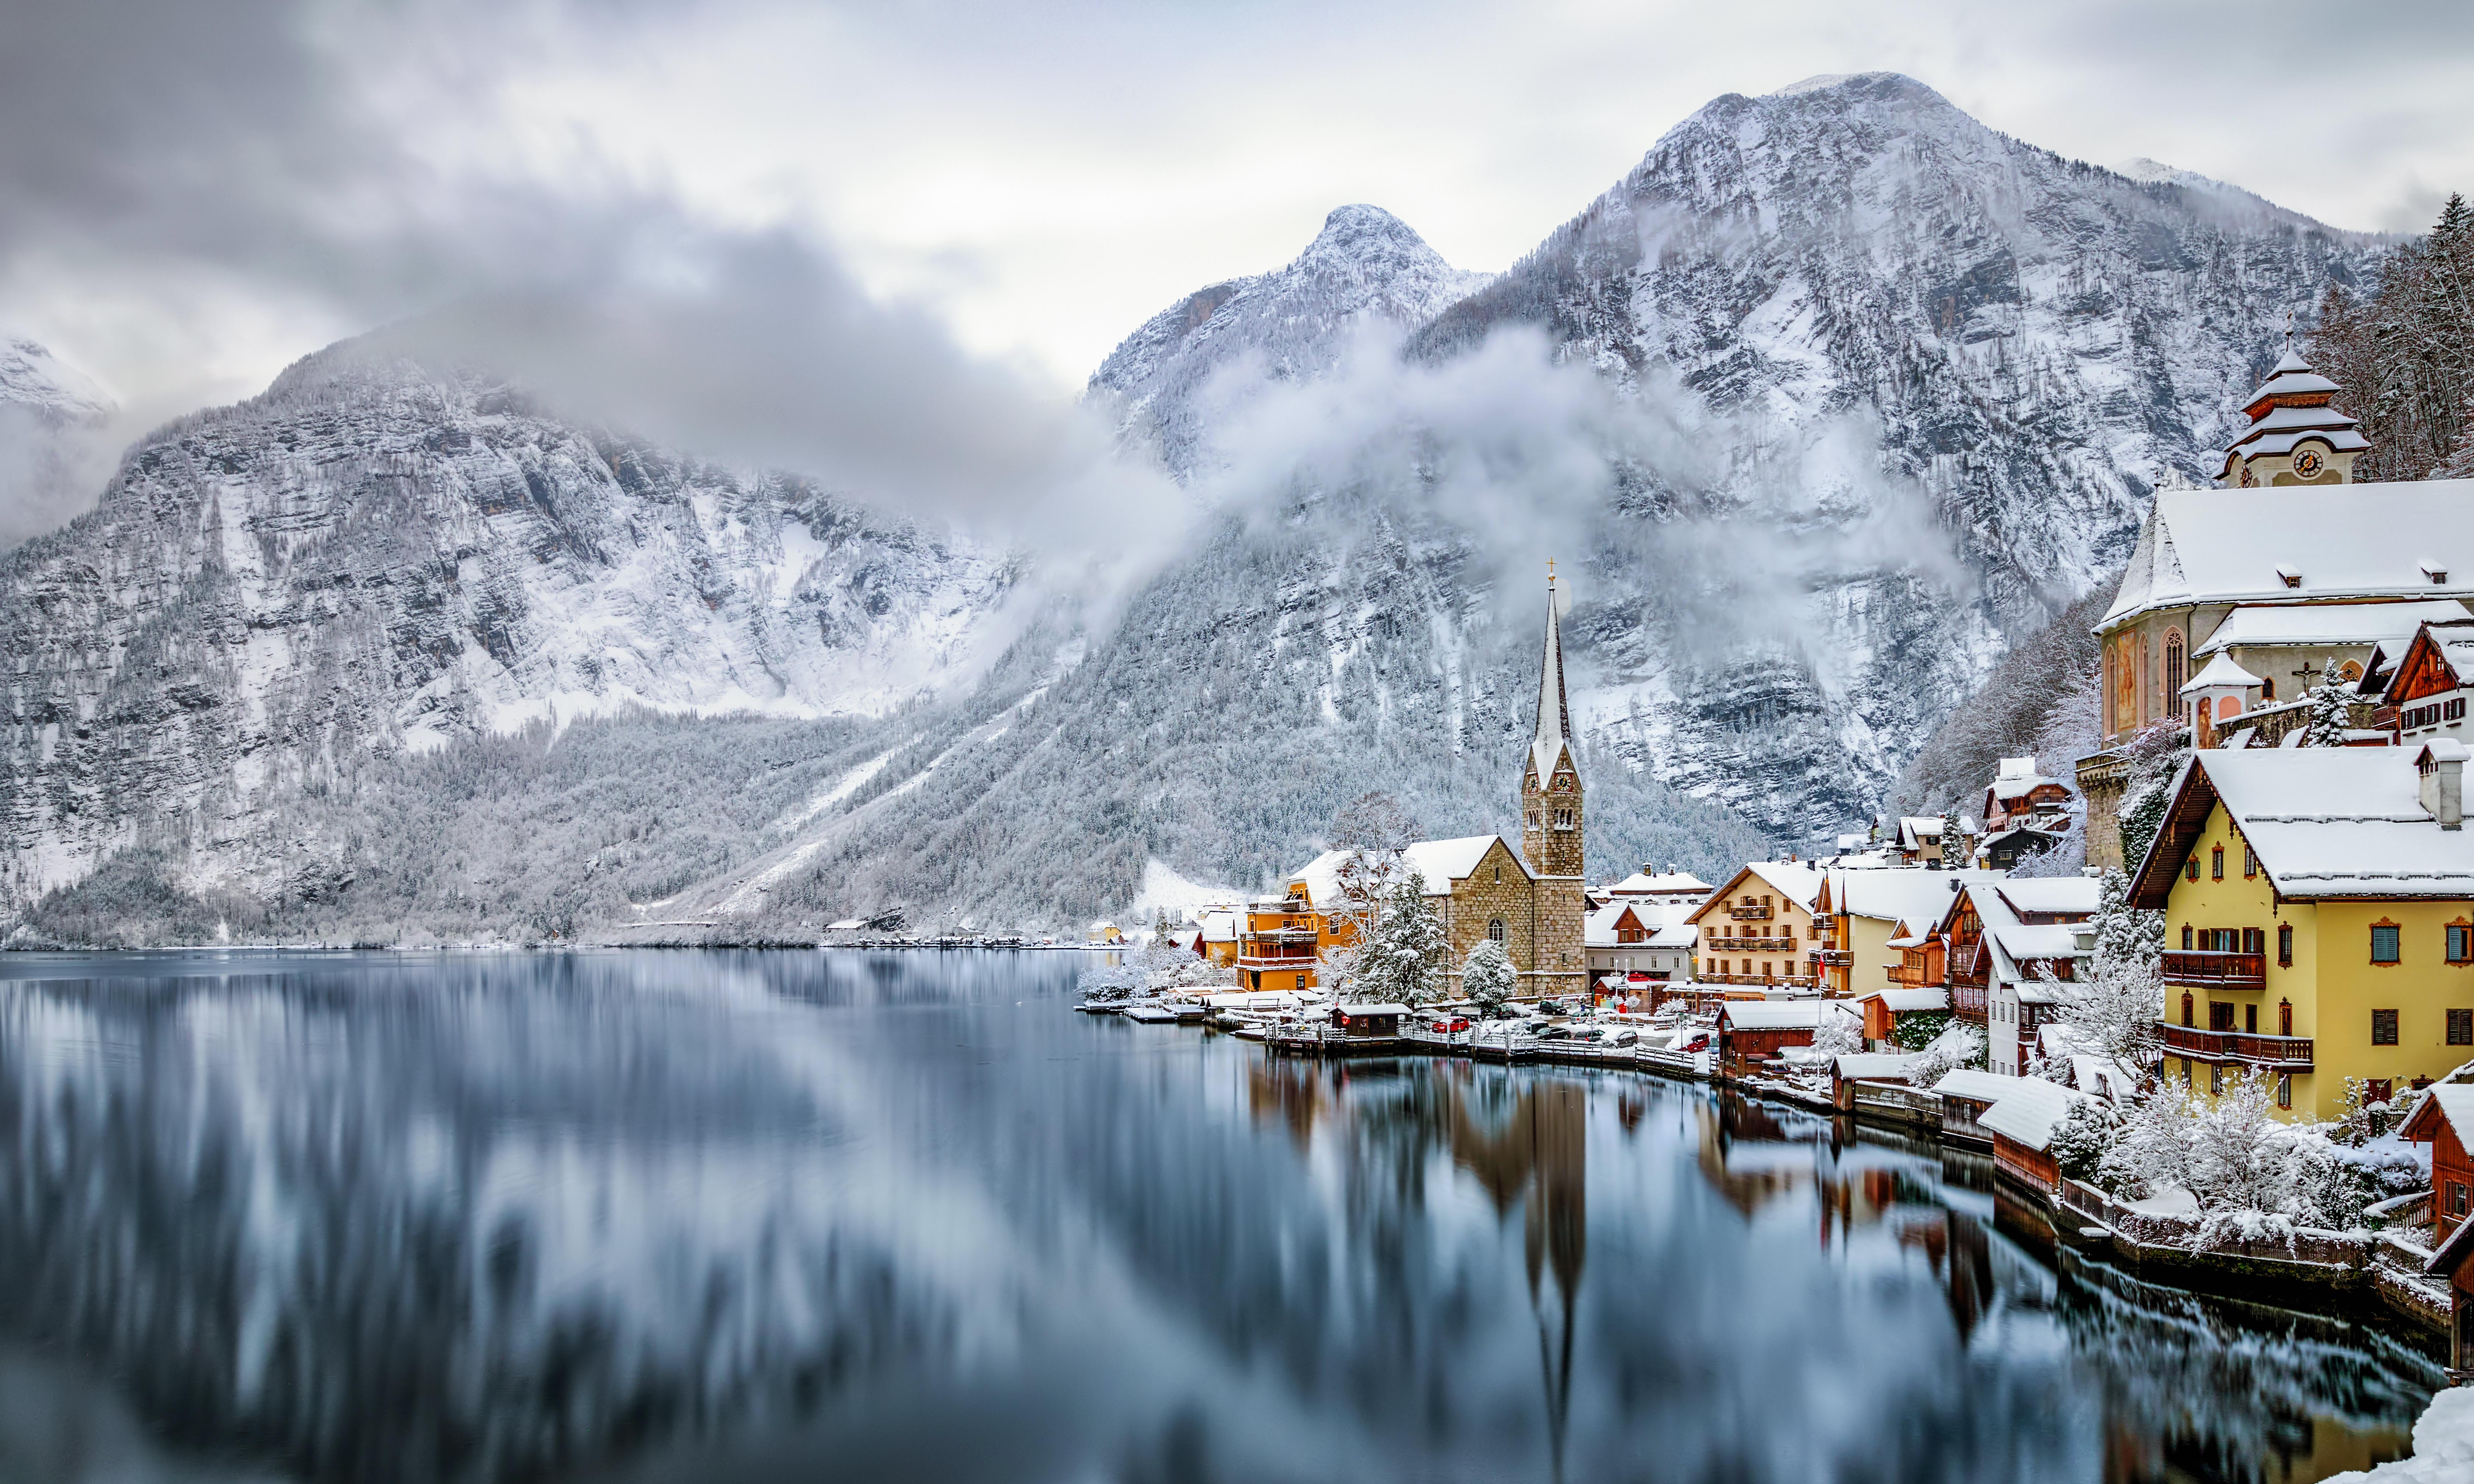 10 great winter holidays in Europe for non-skiers